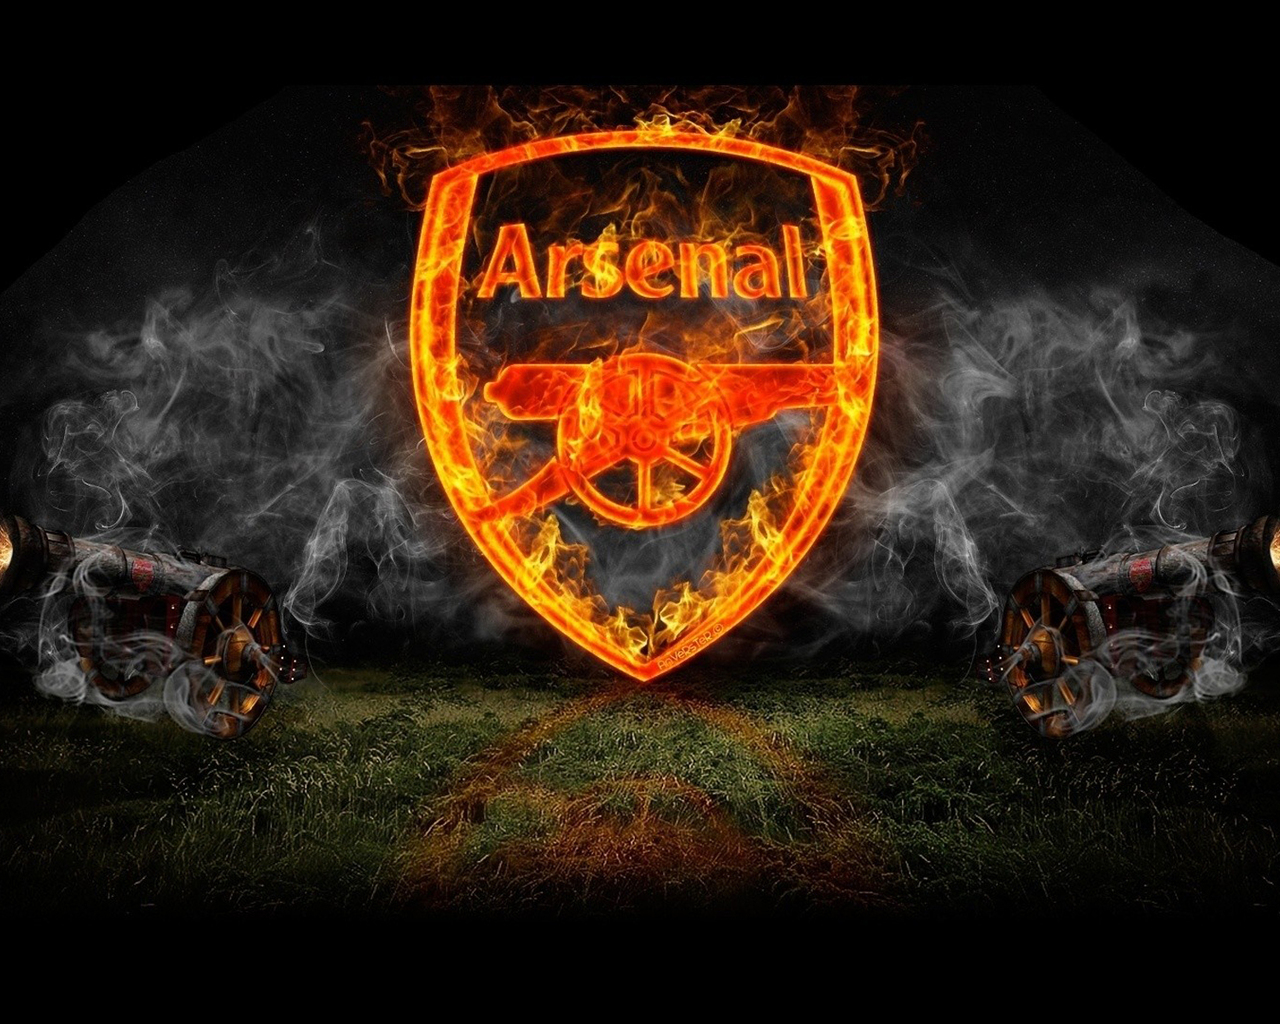 Arsenal Wallpaper 4k: 1280x1024 Fc Arsenal Gunners 1280x1024 Resolution HD 4k